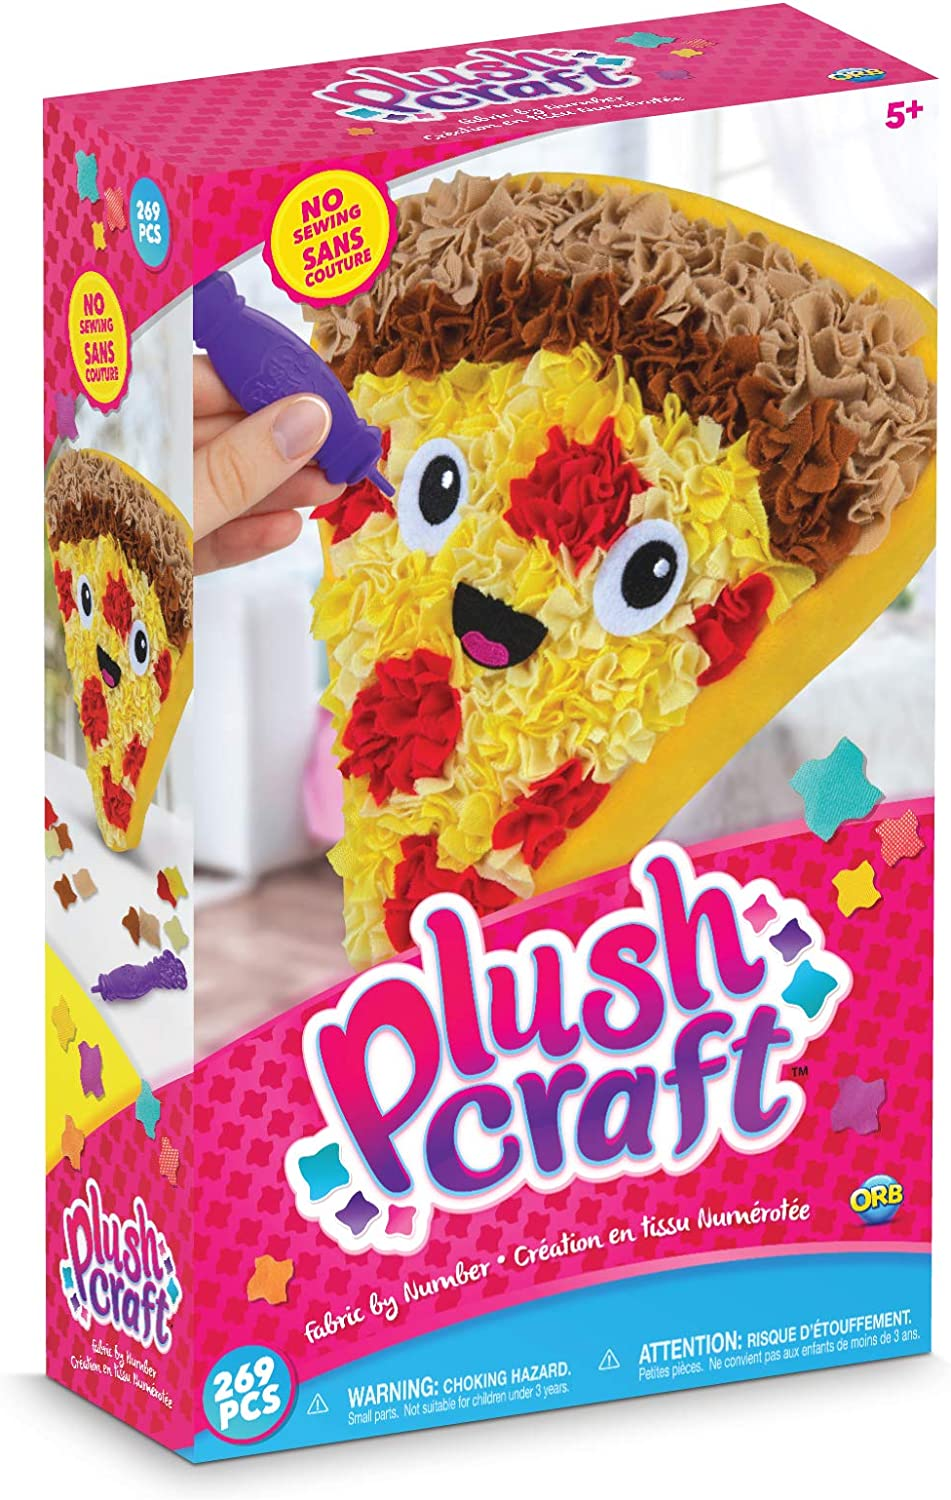 ORB Plushcraft famous Pizza Pillow Limited price